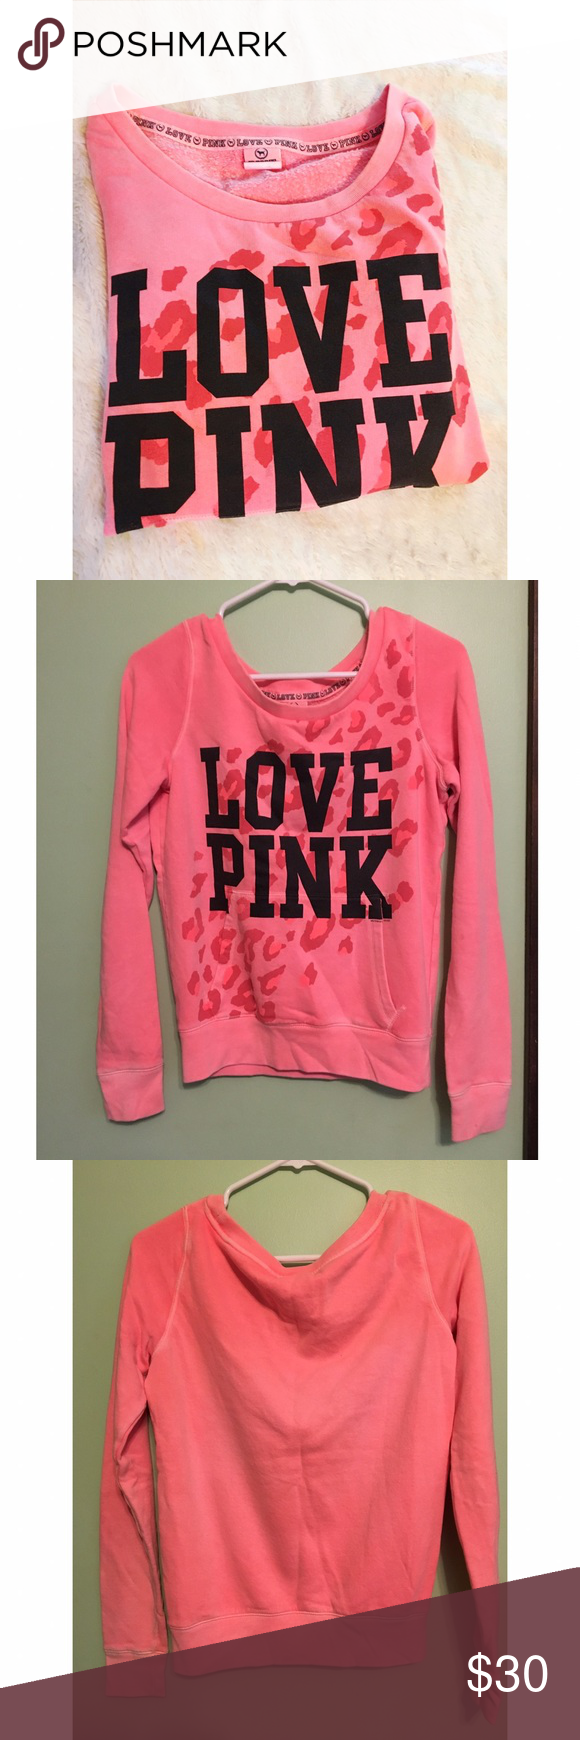 VS | PINK crew neck sweatshirt | Crew neck sweatshirt, vs Pink and ...